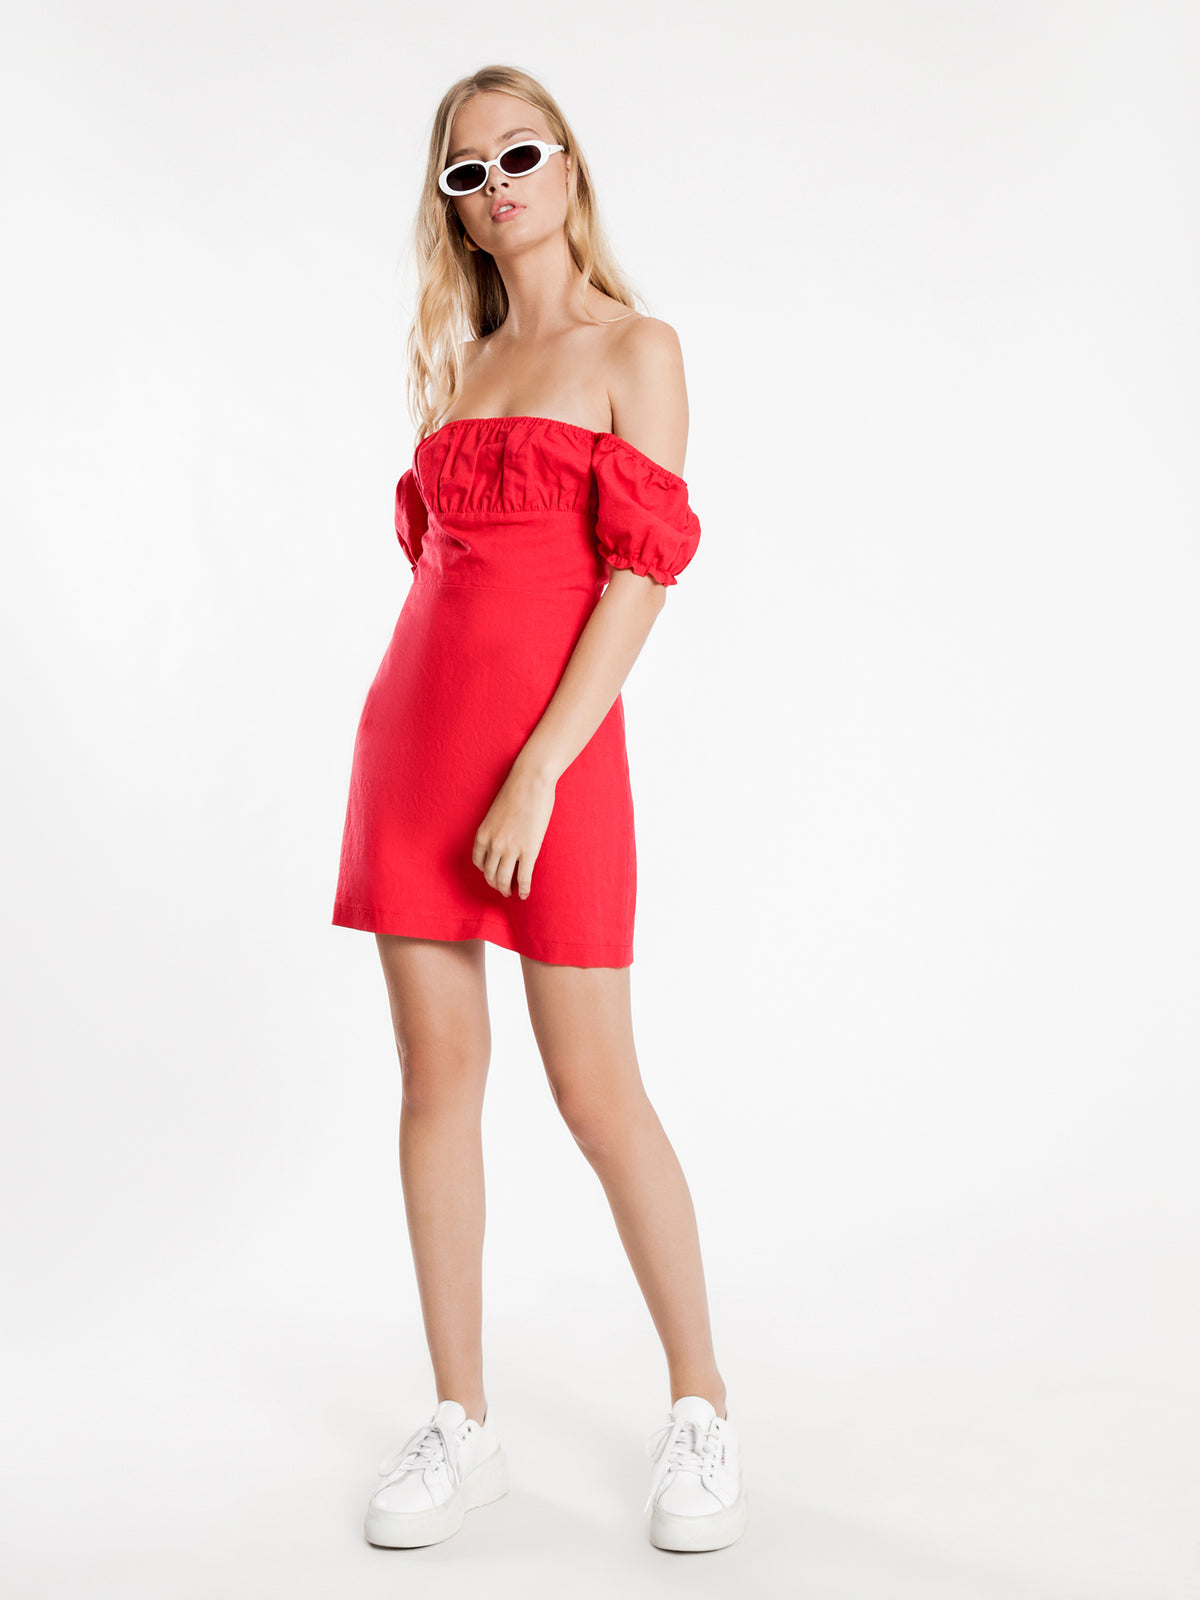 Edie Linen Dress in Red